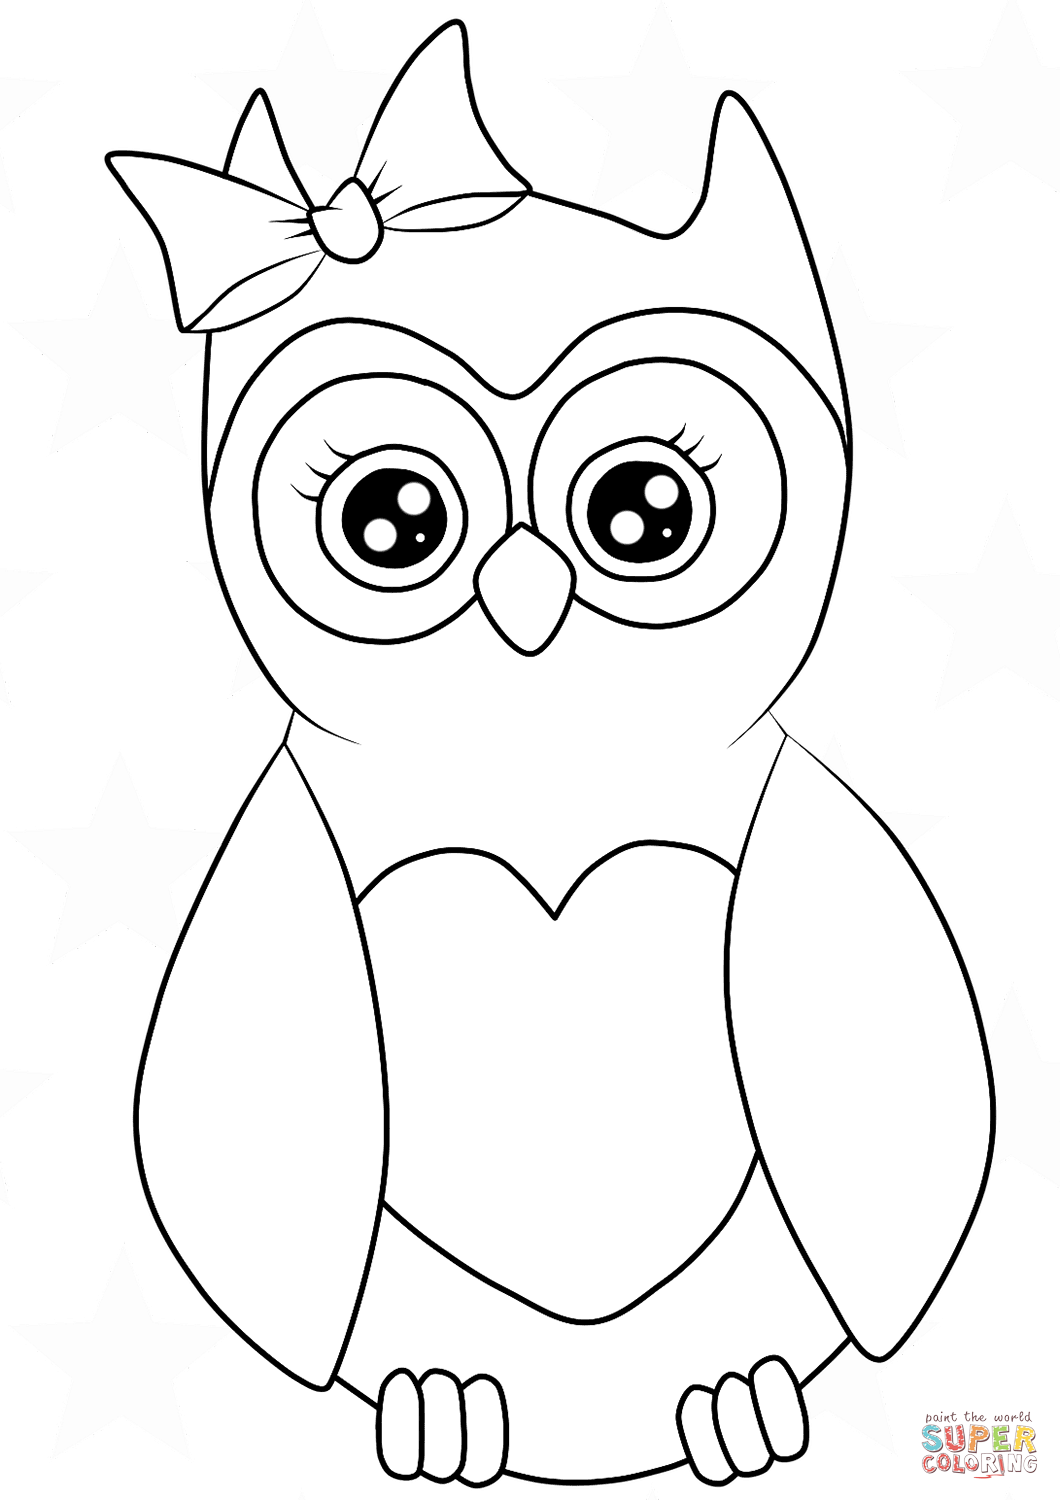 cute coloring pages of owls cute owl coloring pages for adults coloring pages owls cute coloring of pages